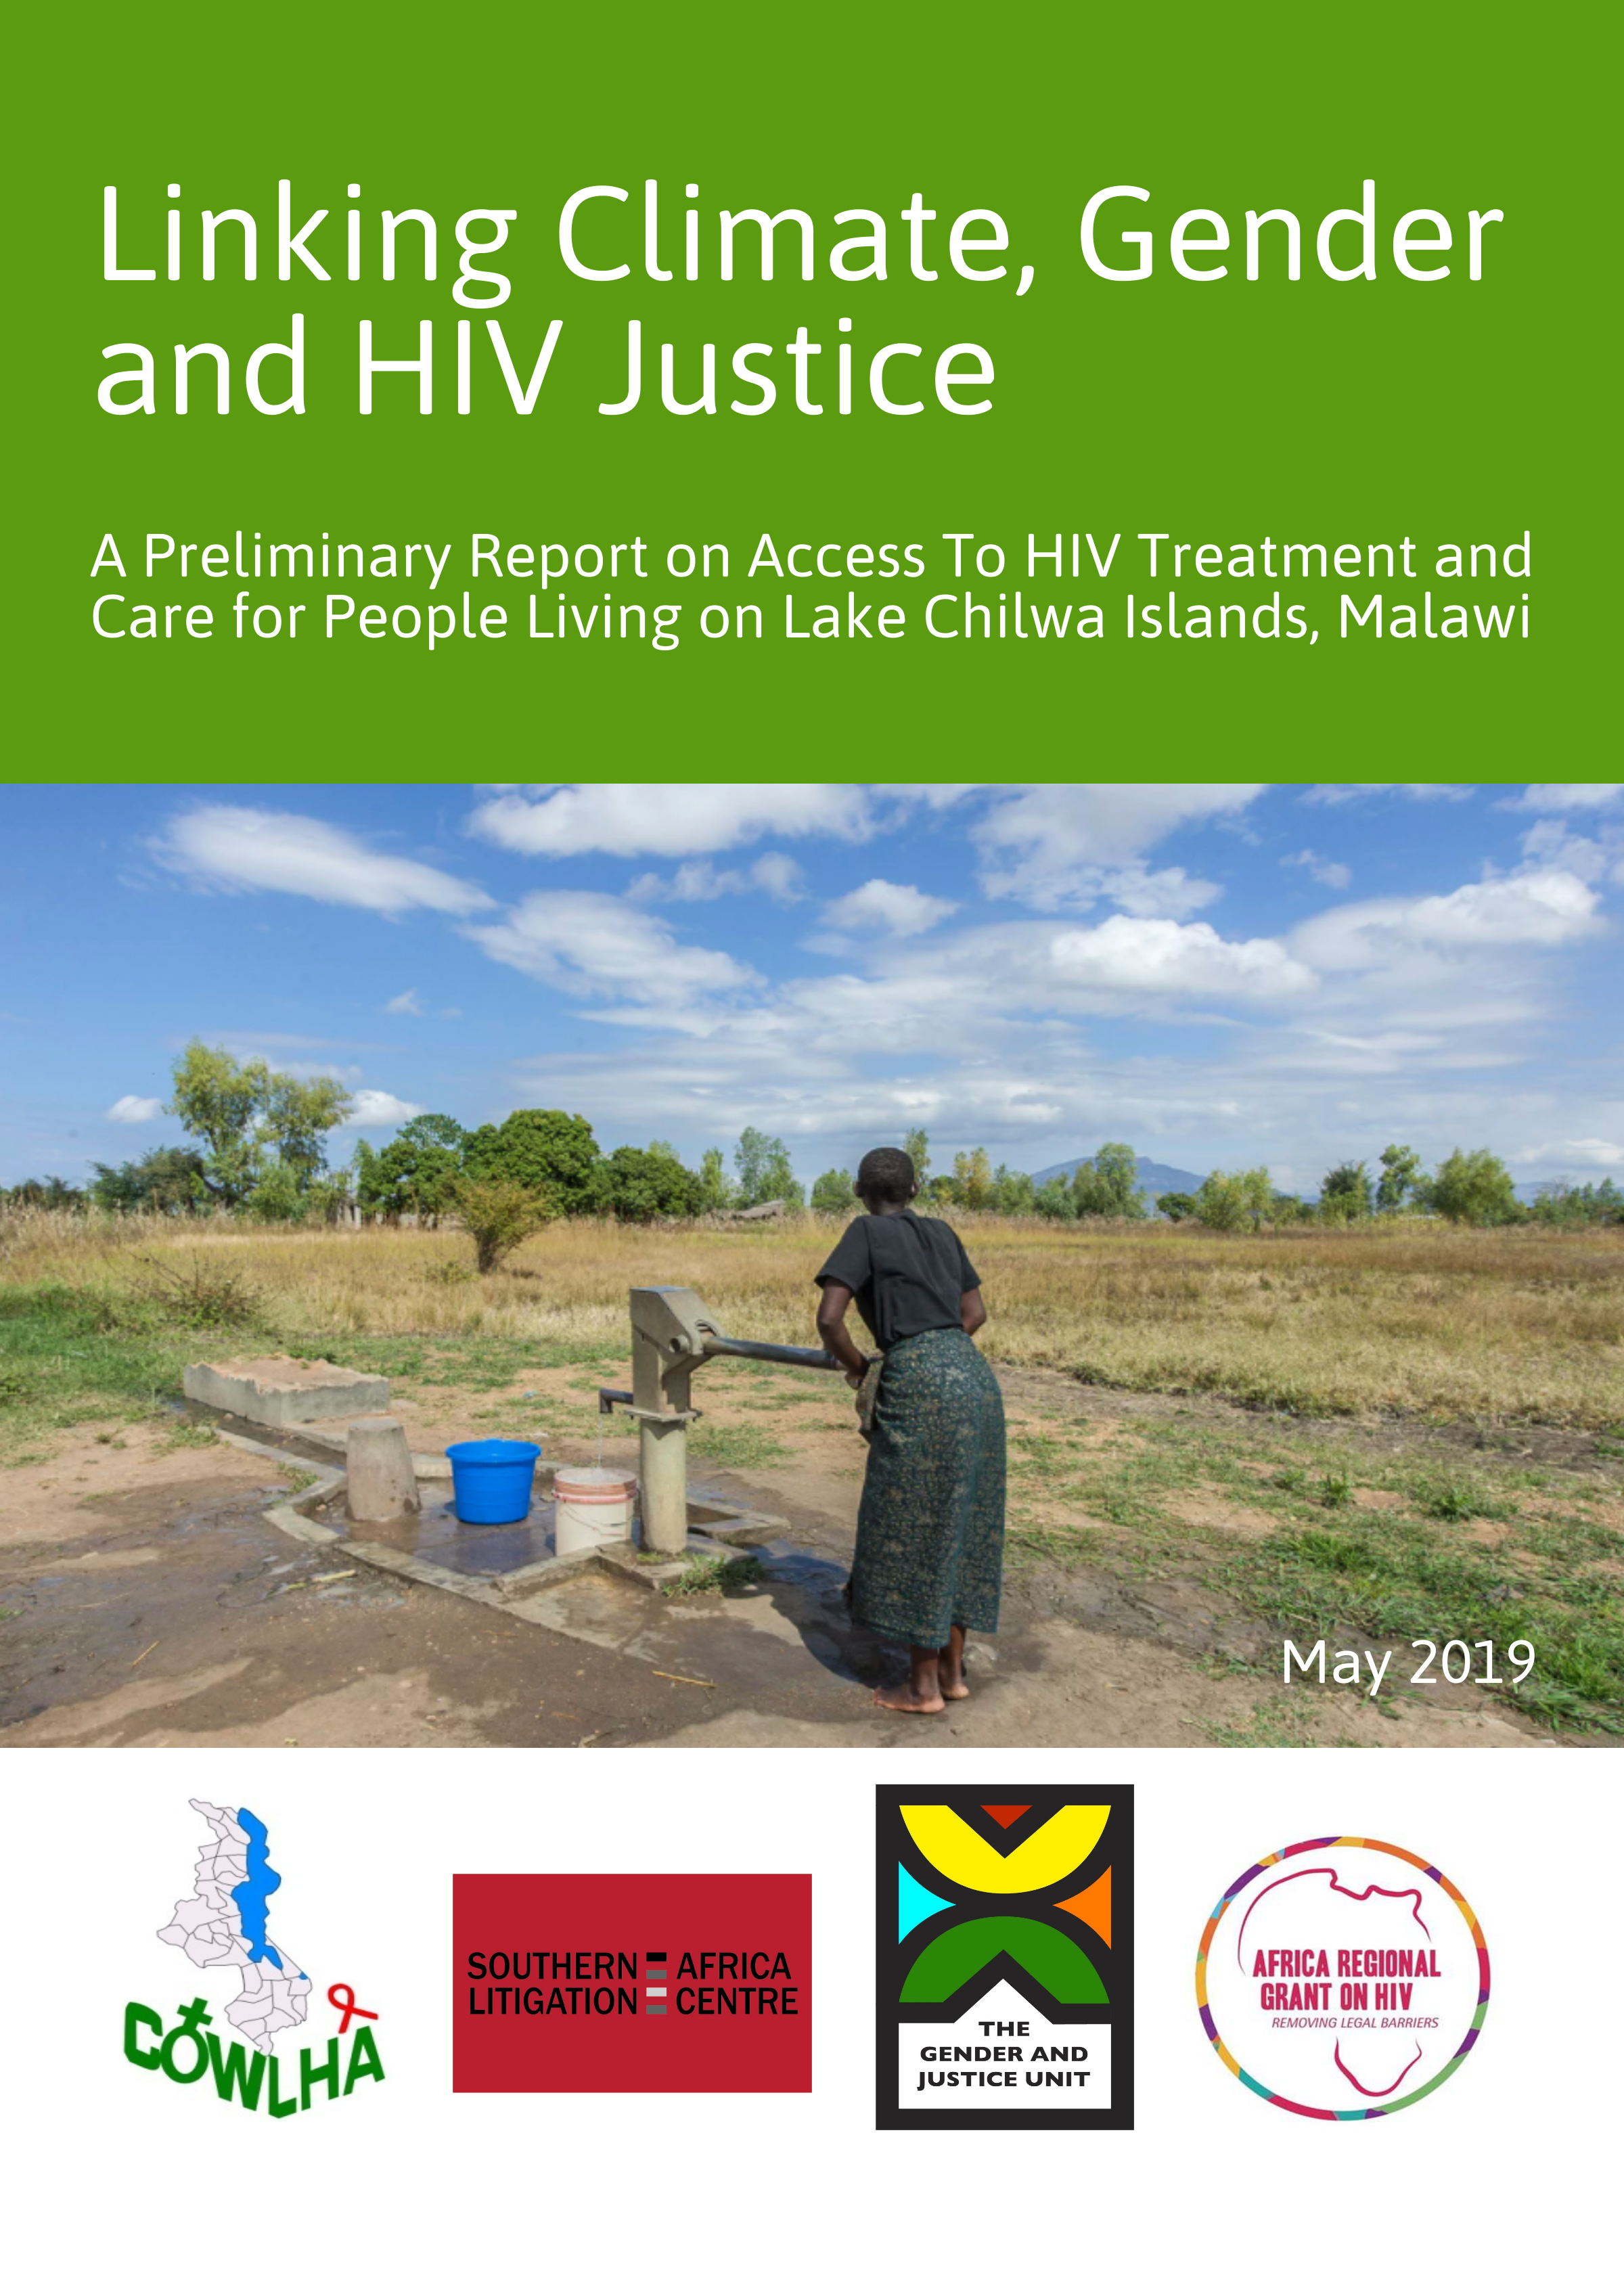 Linking Climate, Gender and HIV Justice: A Preliminary Report on Access to HIV Treatment and Care for People Living on Lake Chilwa Islands, Malawi